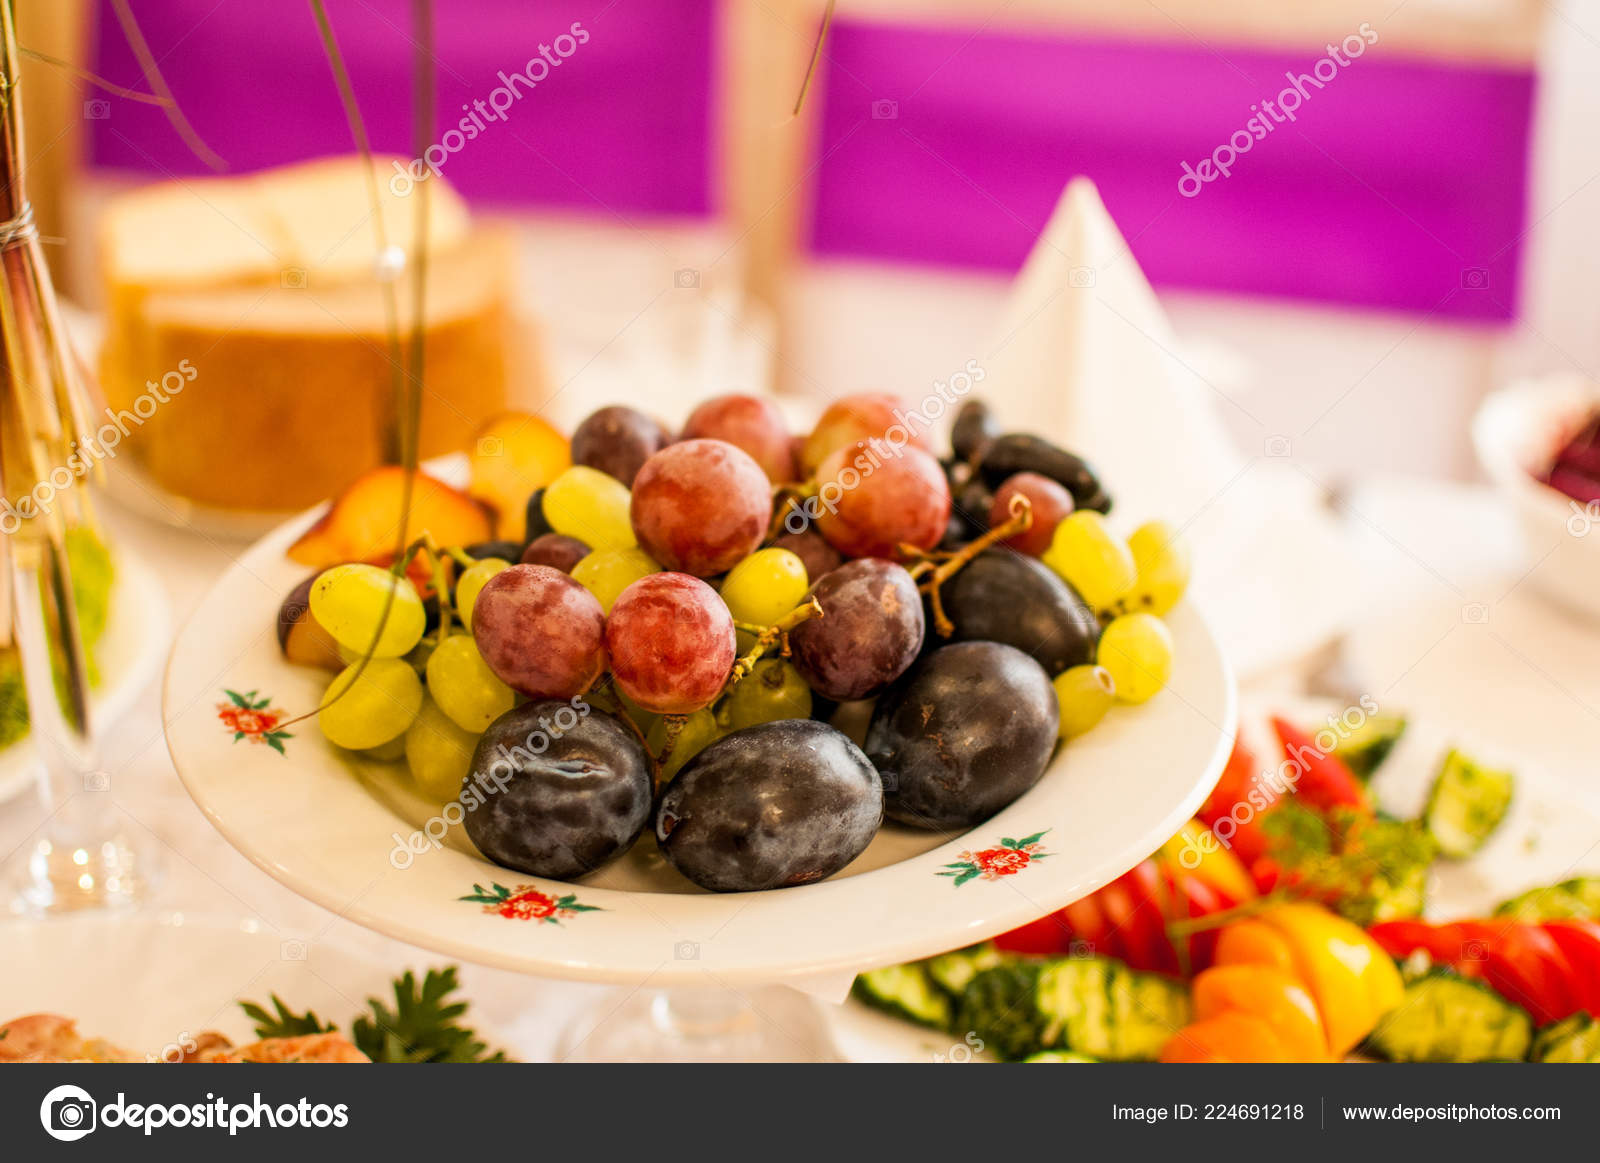 Dish Colorful Fruit Mix Stock Photo Galka3250 224691218